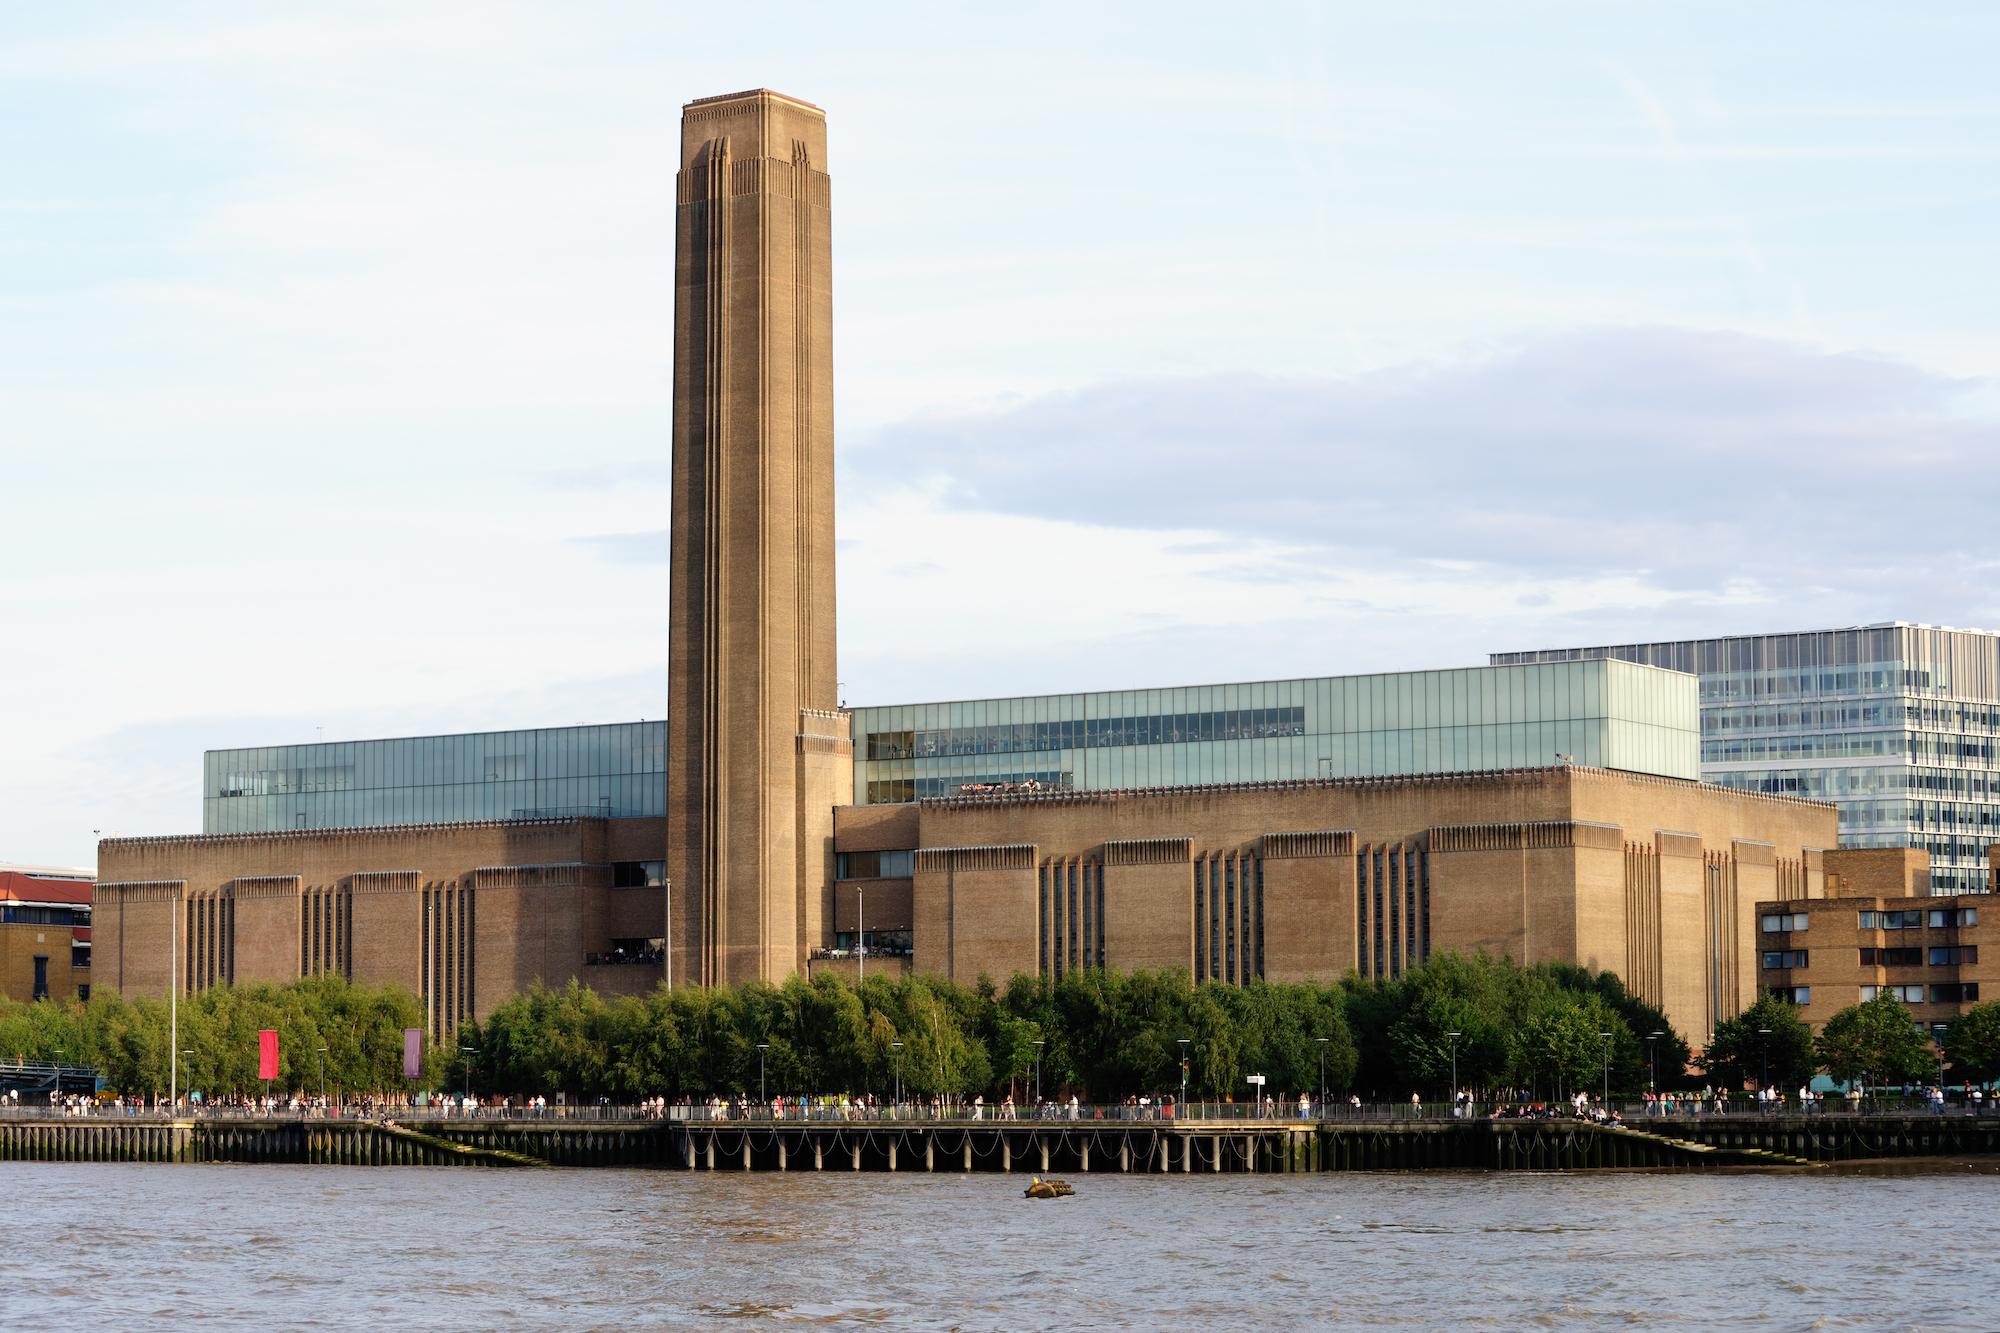 Tragedy at Tate Modern, Plans for the Notre Dame Rebuild, and More: Morning Links from August 5, 2019